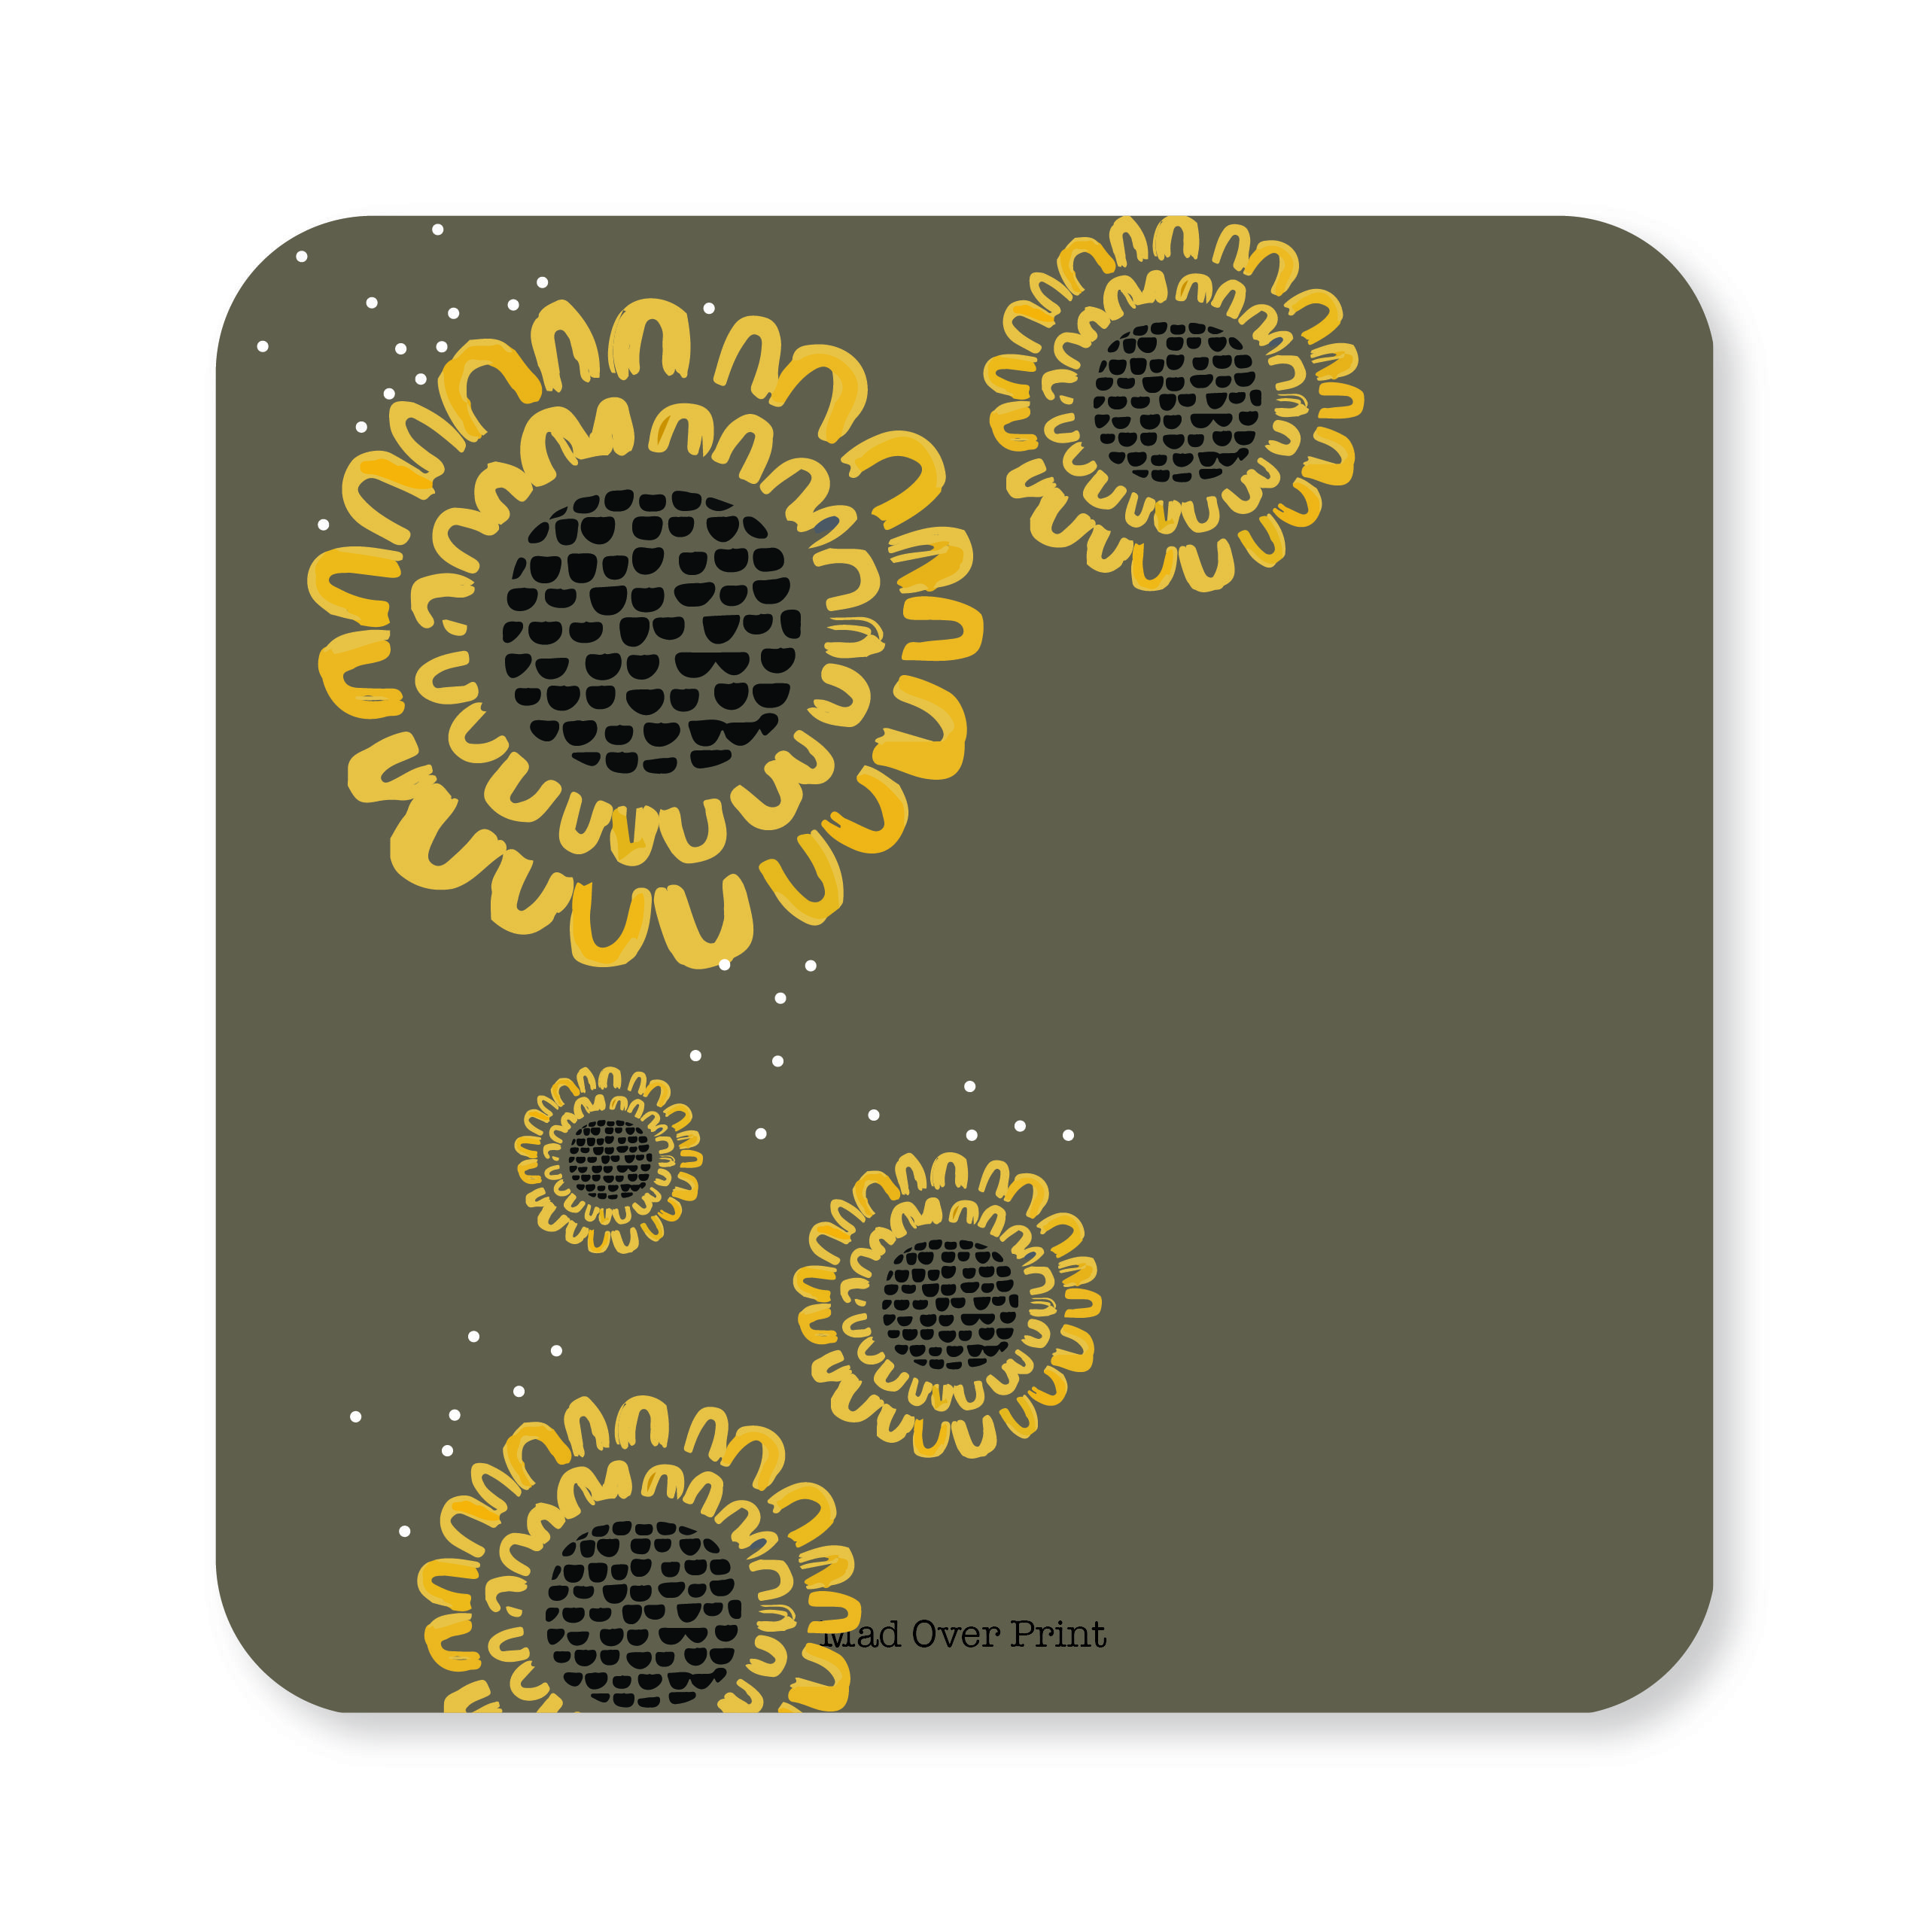 Buy Attractive And Decorative Coasters To Add A Pinch Of Brightness To Your Decor Check Out Our Website For More Mopy Shopping Coasters Custom Cup Decor